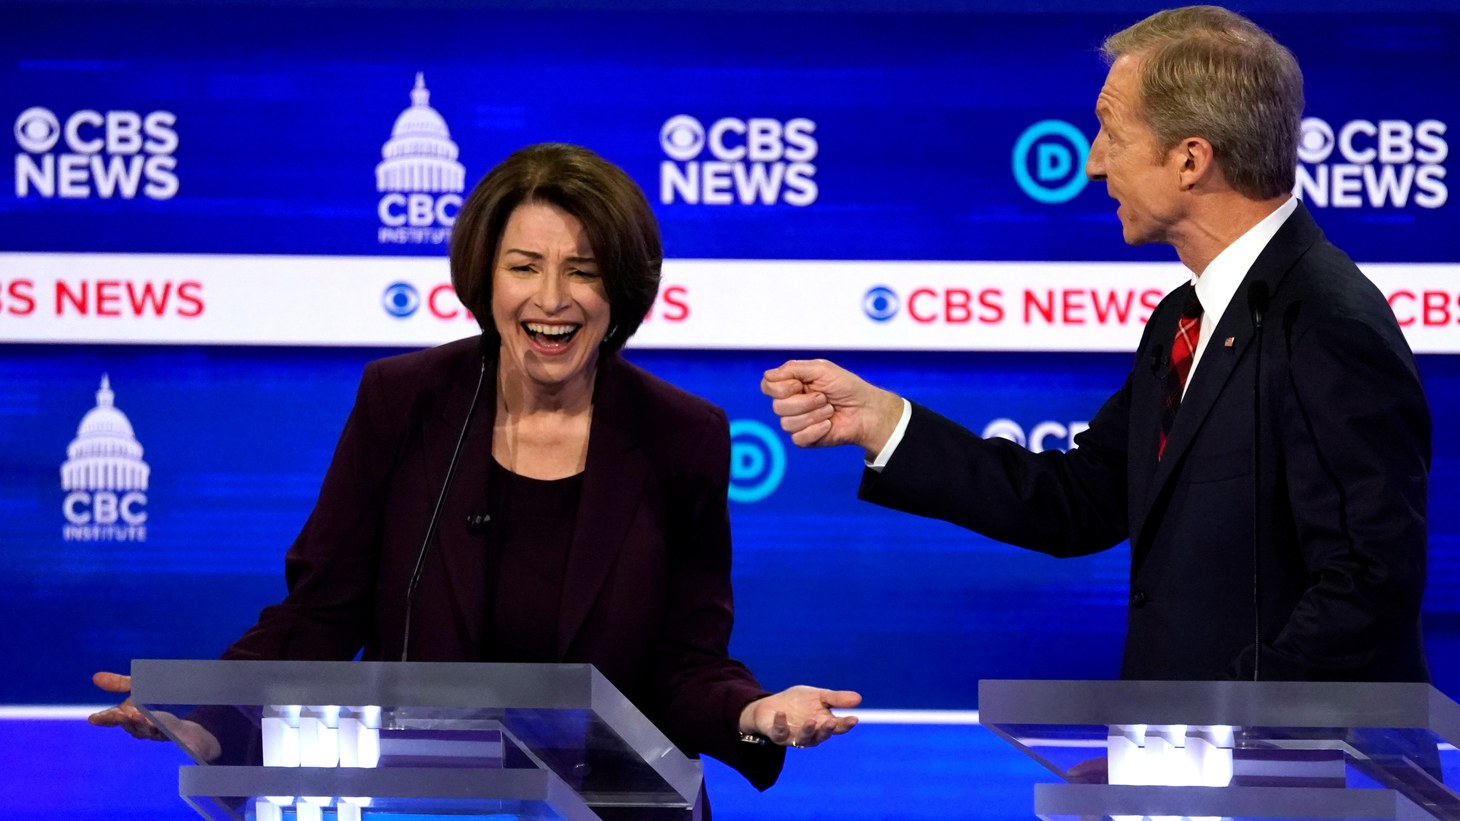 Democratic 2020 U.S. presidential candidates Senator Amy Klobuchar and billionaire activist Tom Steyer debate at the tenth Democratic 2020 presidential debate at the Gaillard Center in Charleston, South Carolina, U.S. February 25, 2020.